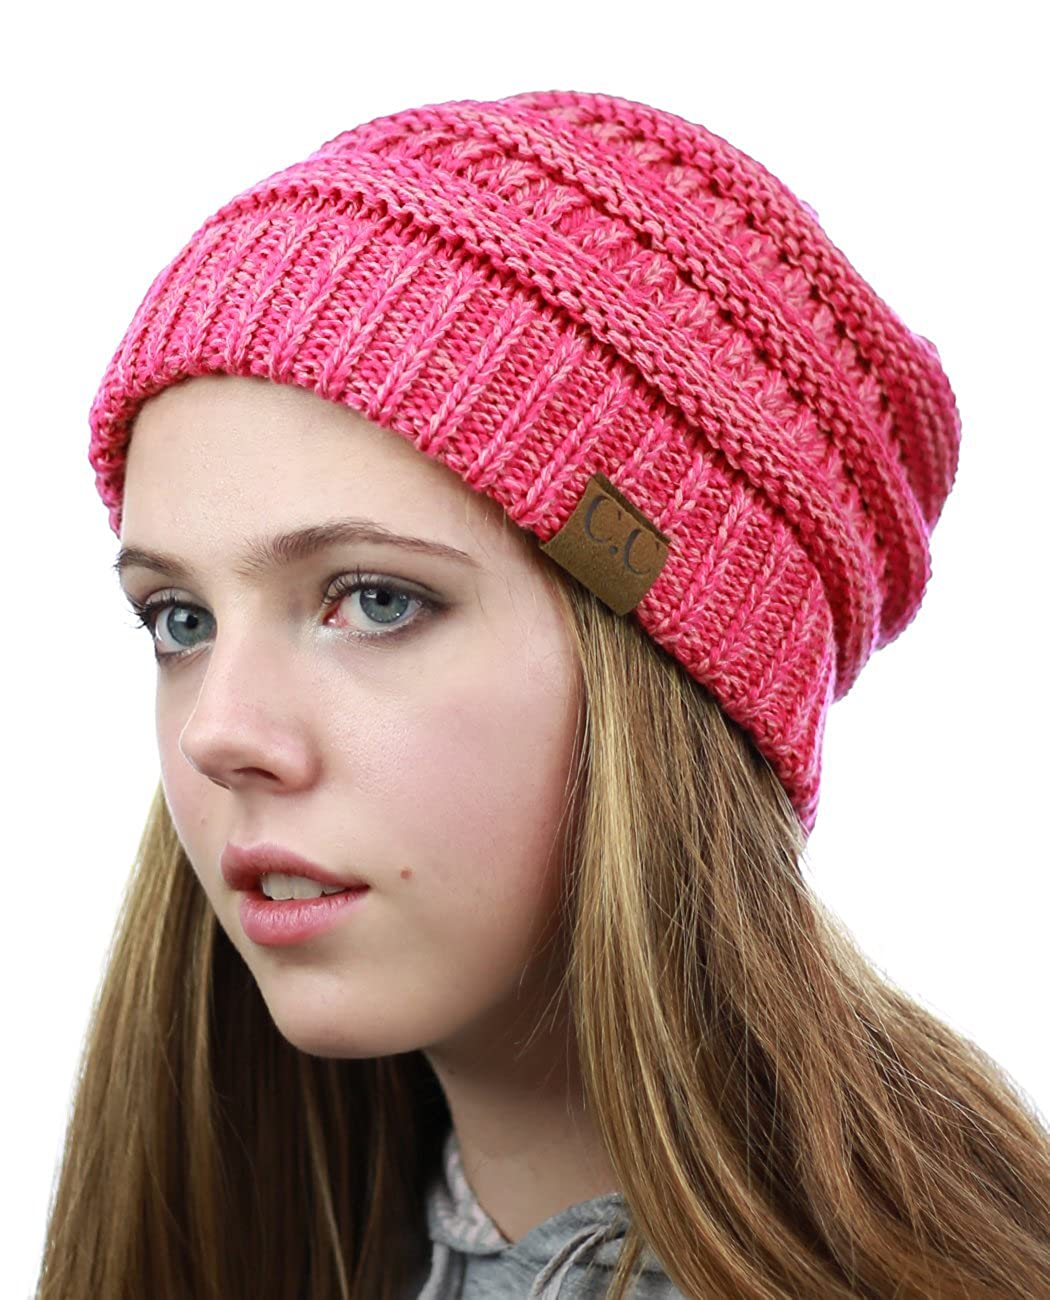 694aeb784ea26 NYfashion101 Exclusive Unisex Two Tone Warm Cable Knit Thick Slouch Beanie  Cap